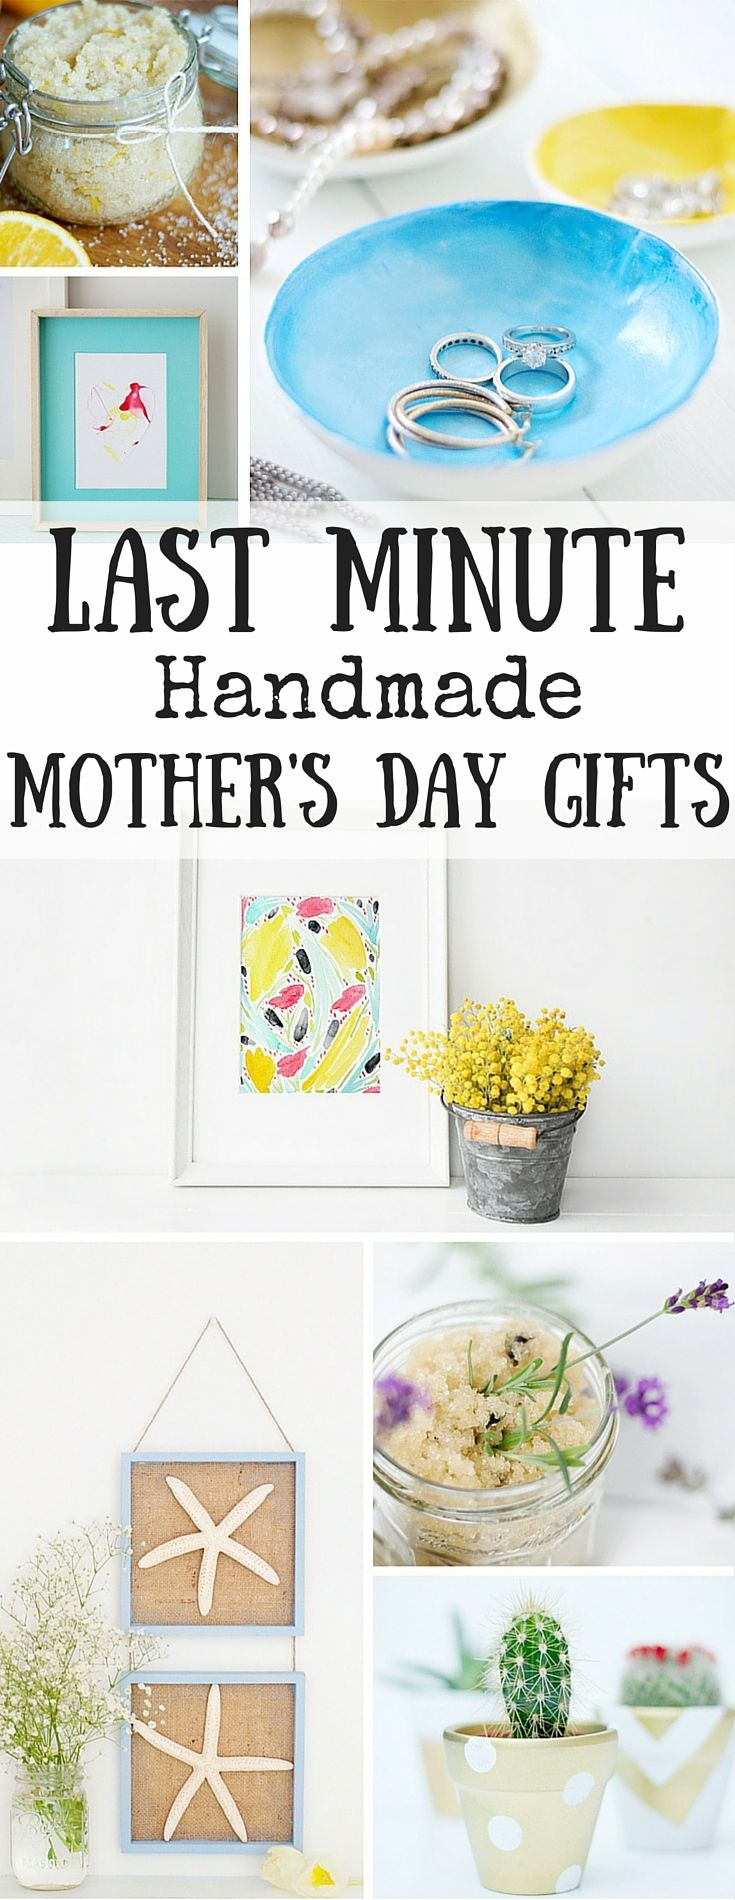 Last minute handmade mothers day gifts diy birthday